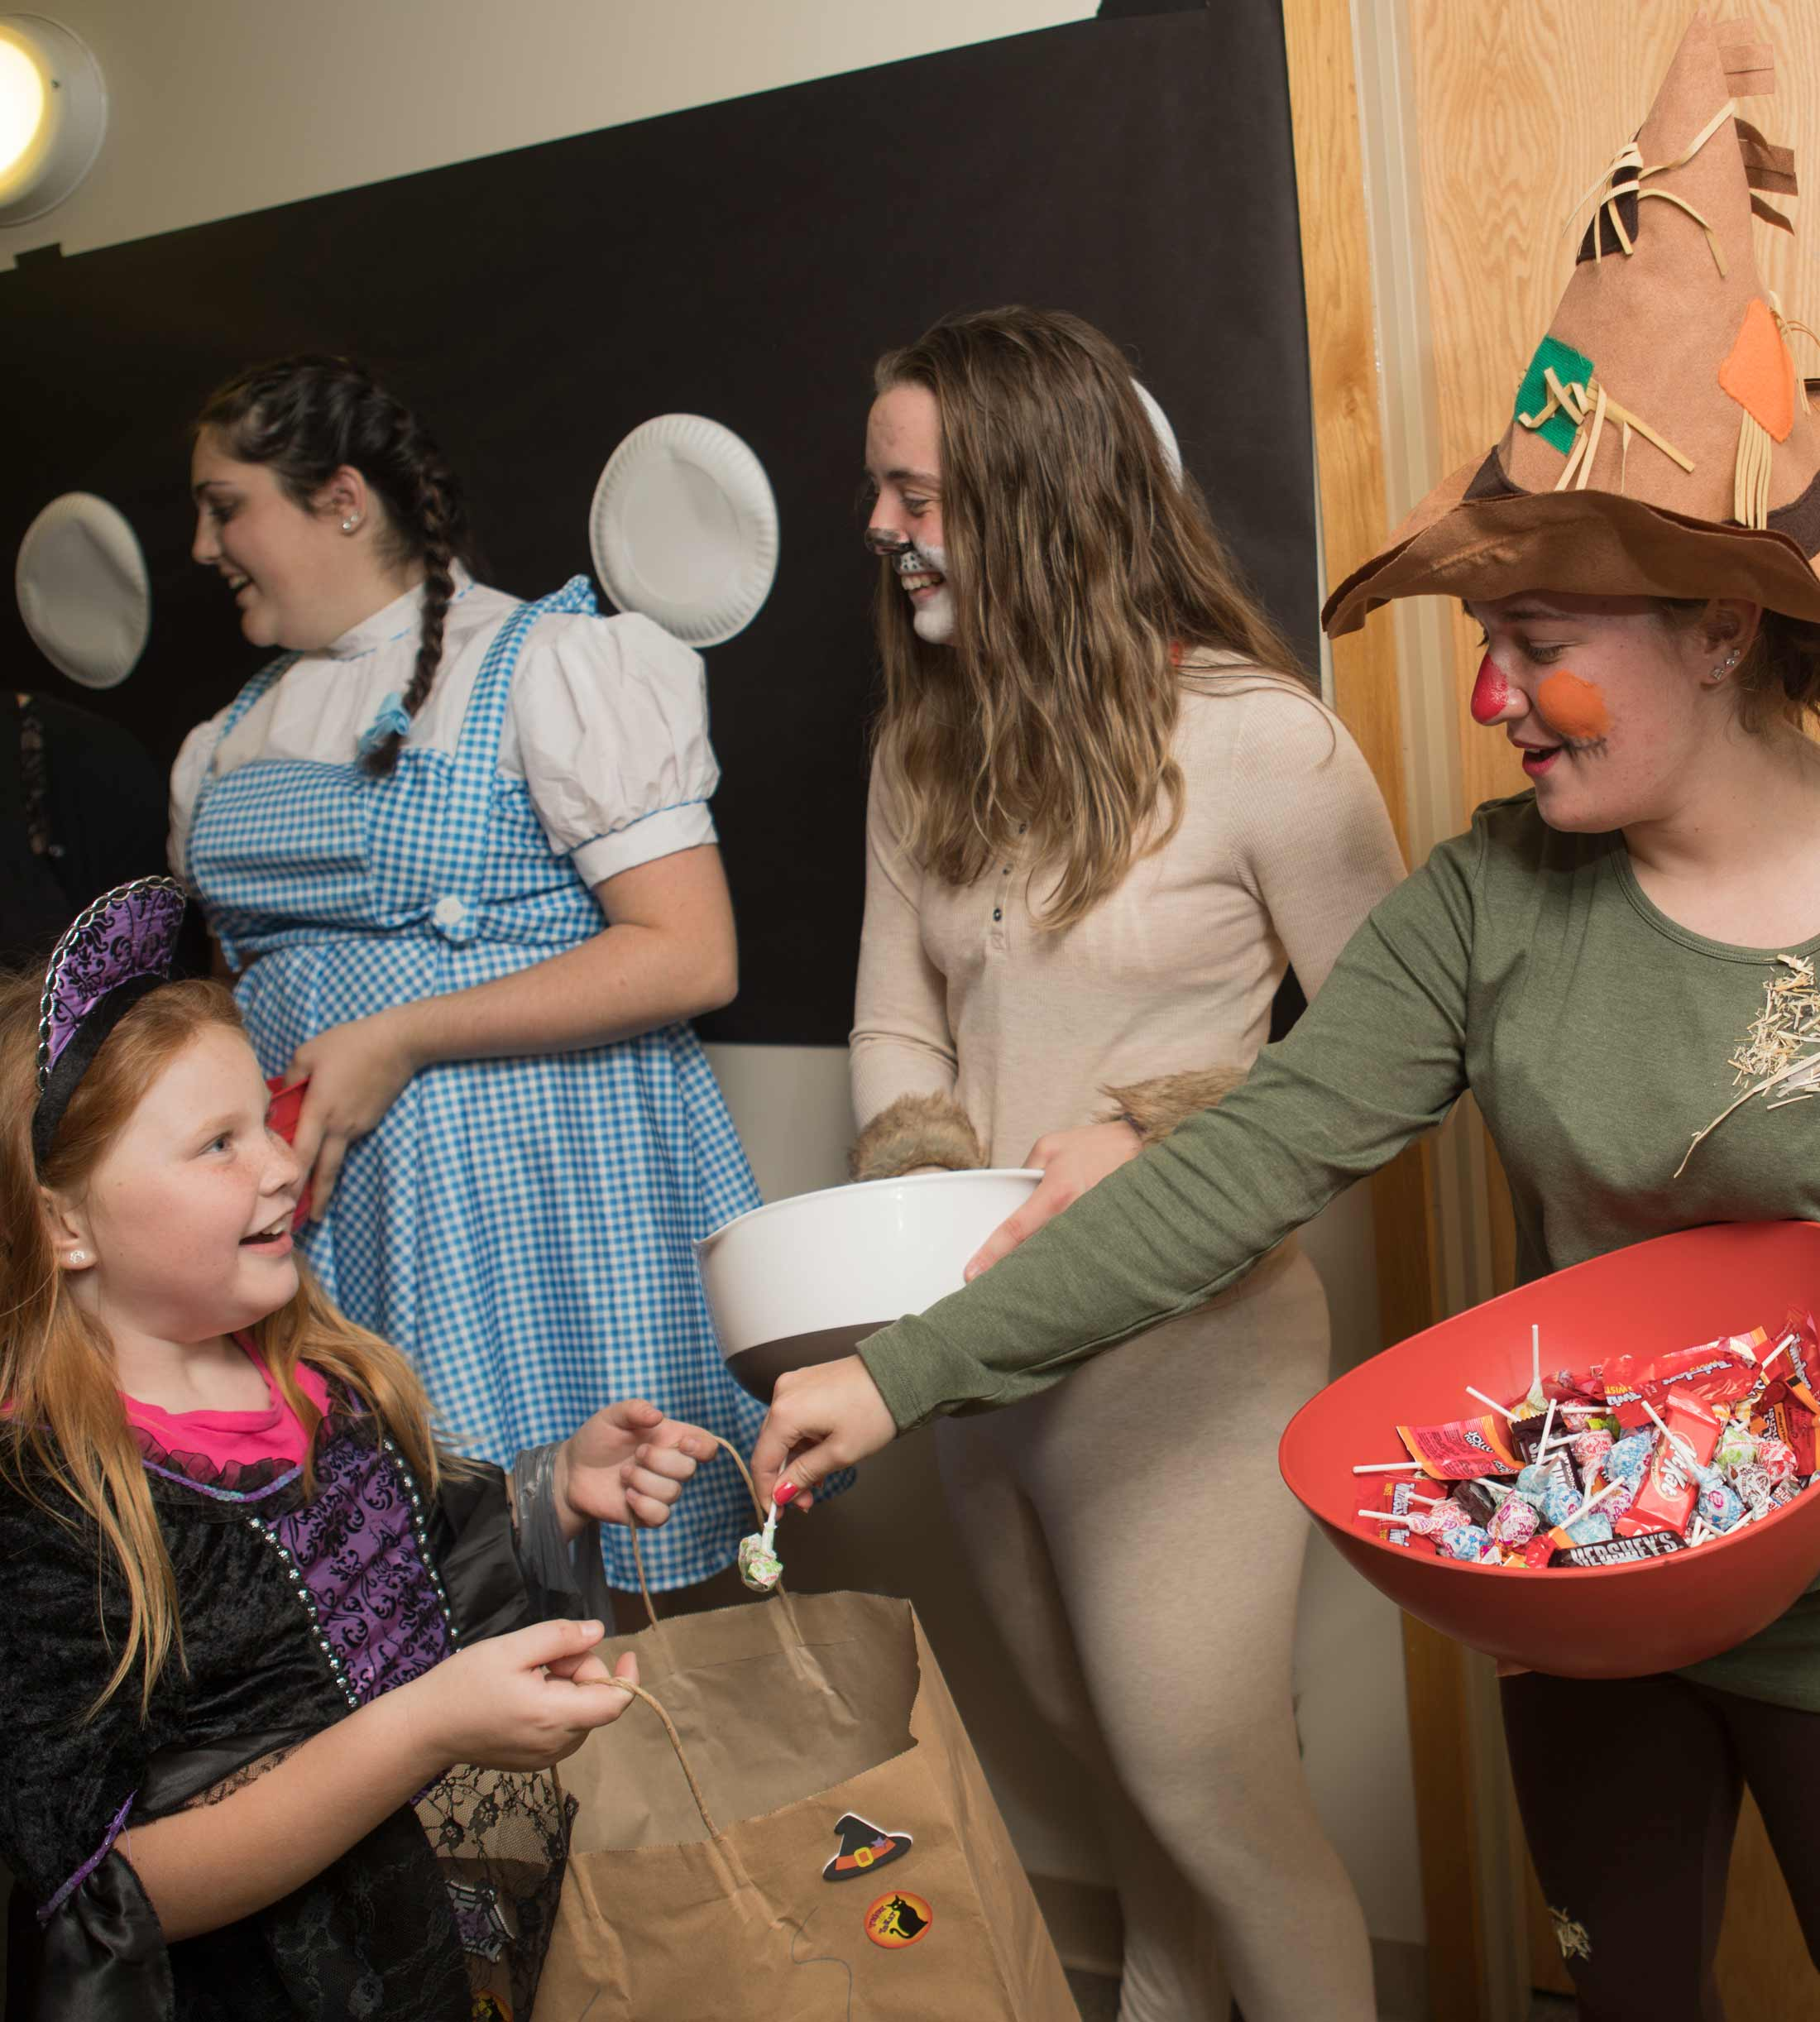 Students pass out candy to kids in Affinity West during Trick-or-Treat night